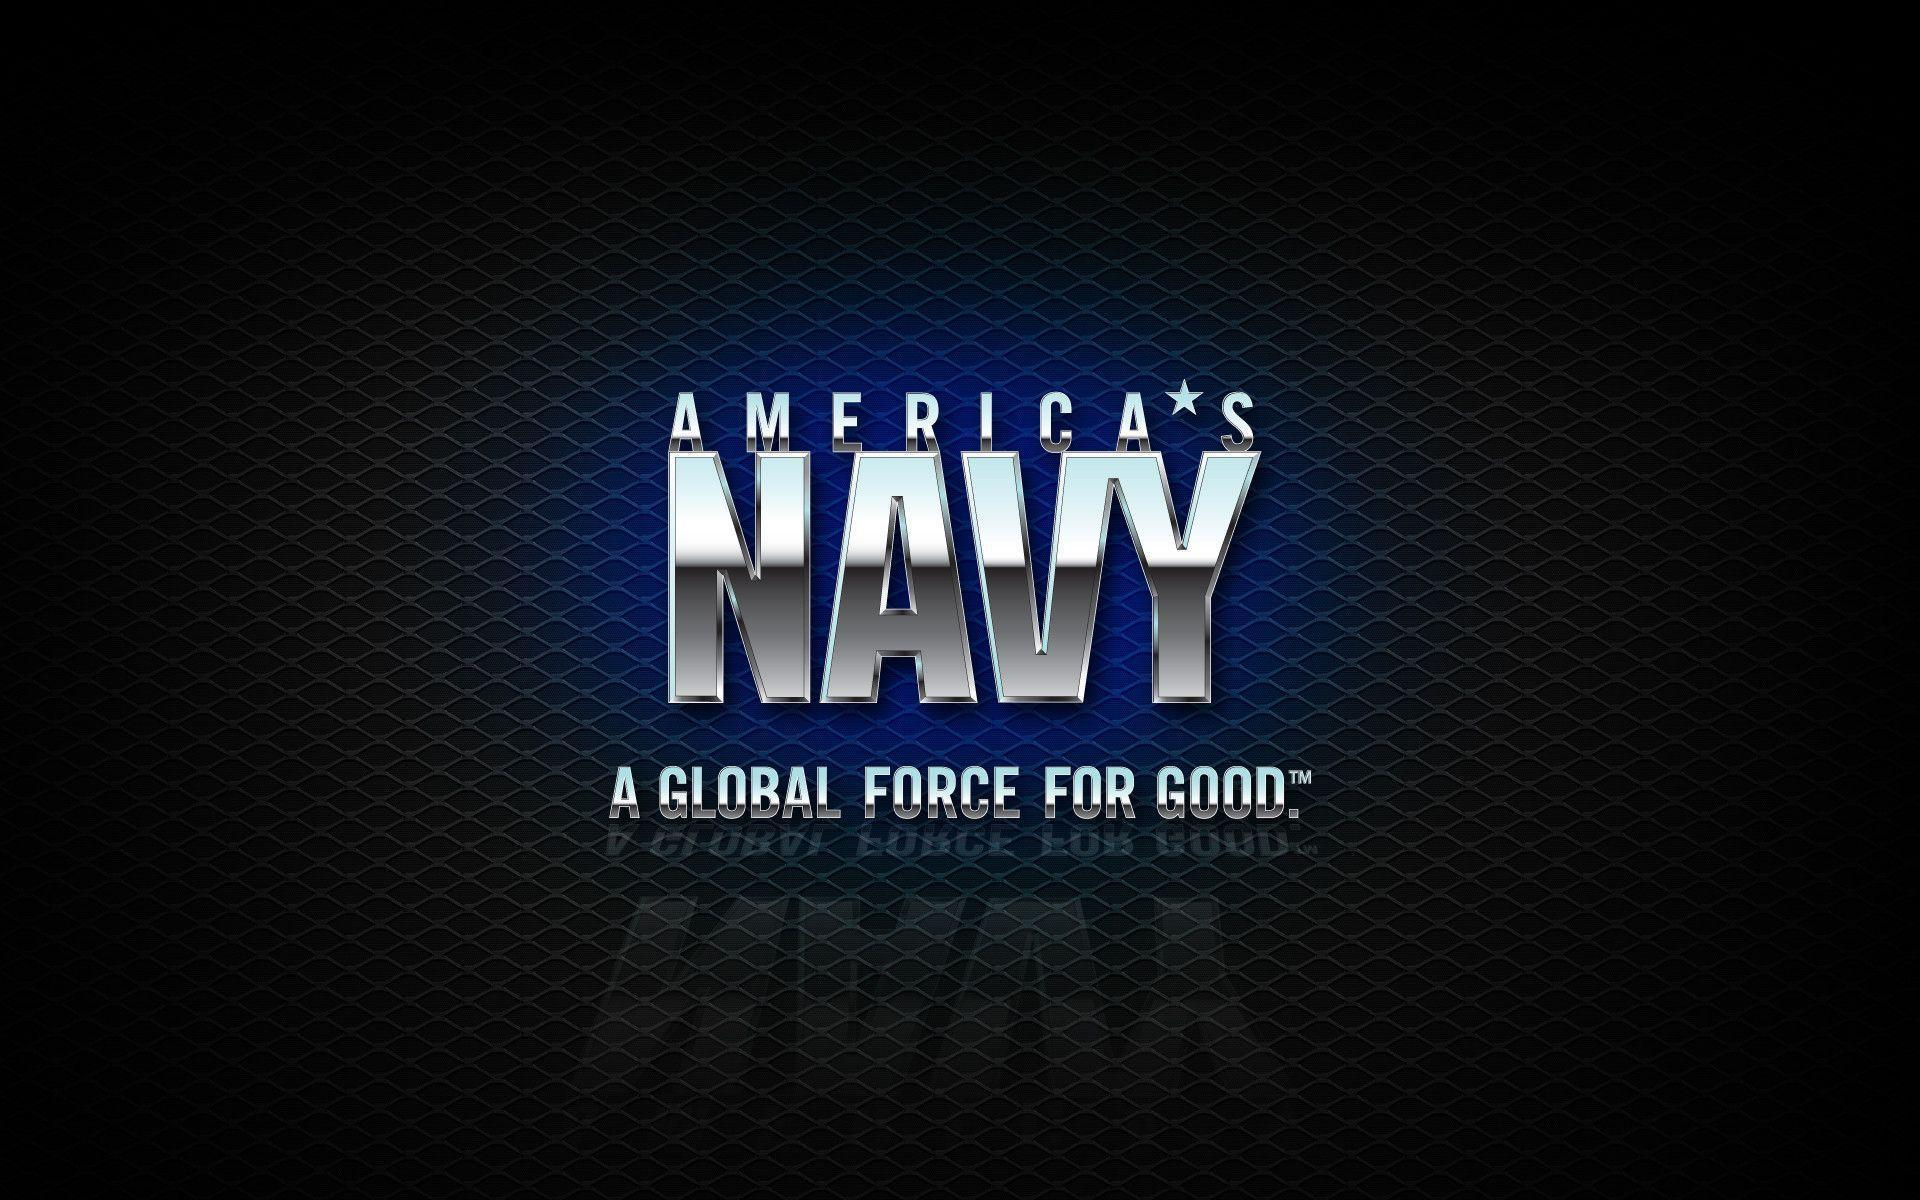 Us navy wallpapers wallpaper cave wallpapers for us navy desktop wallpaper thecheapjerseys Choice Image